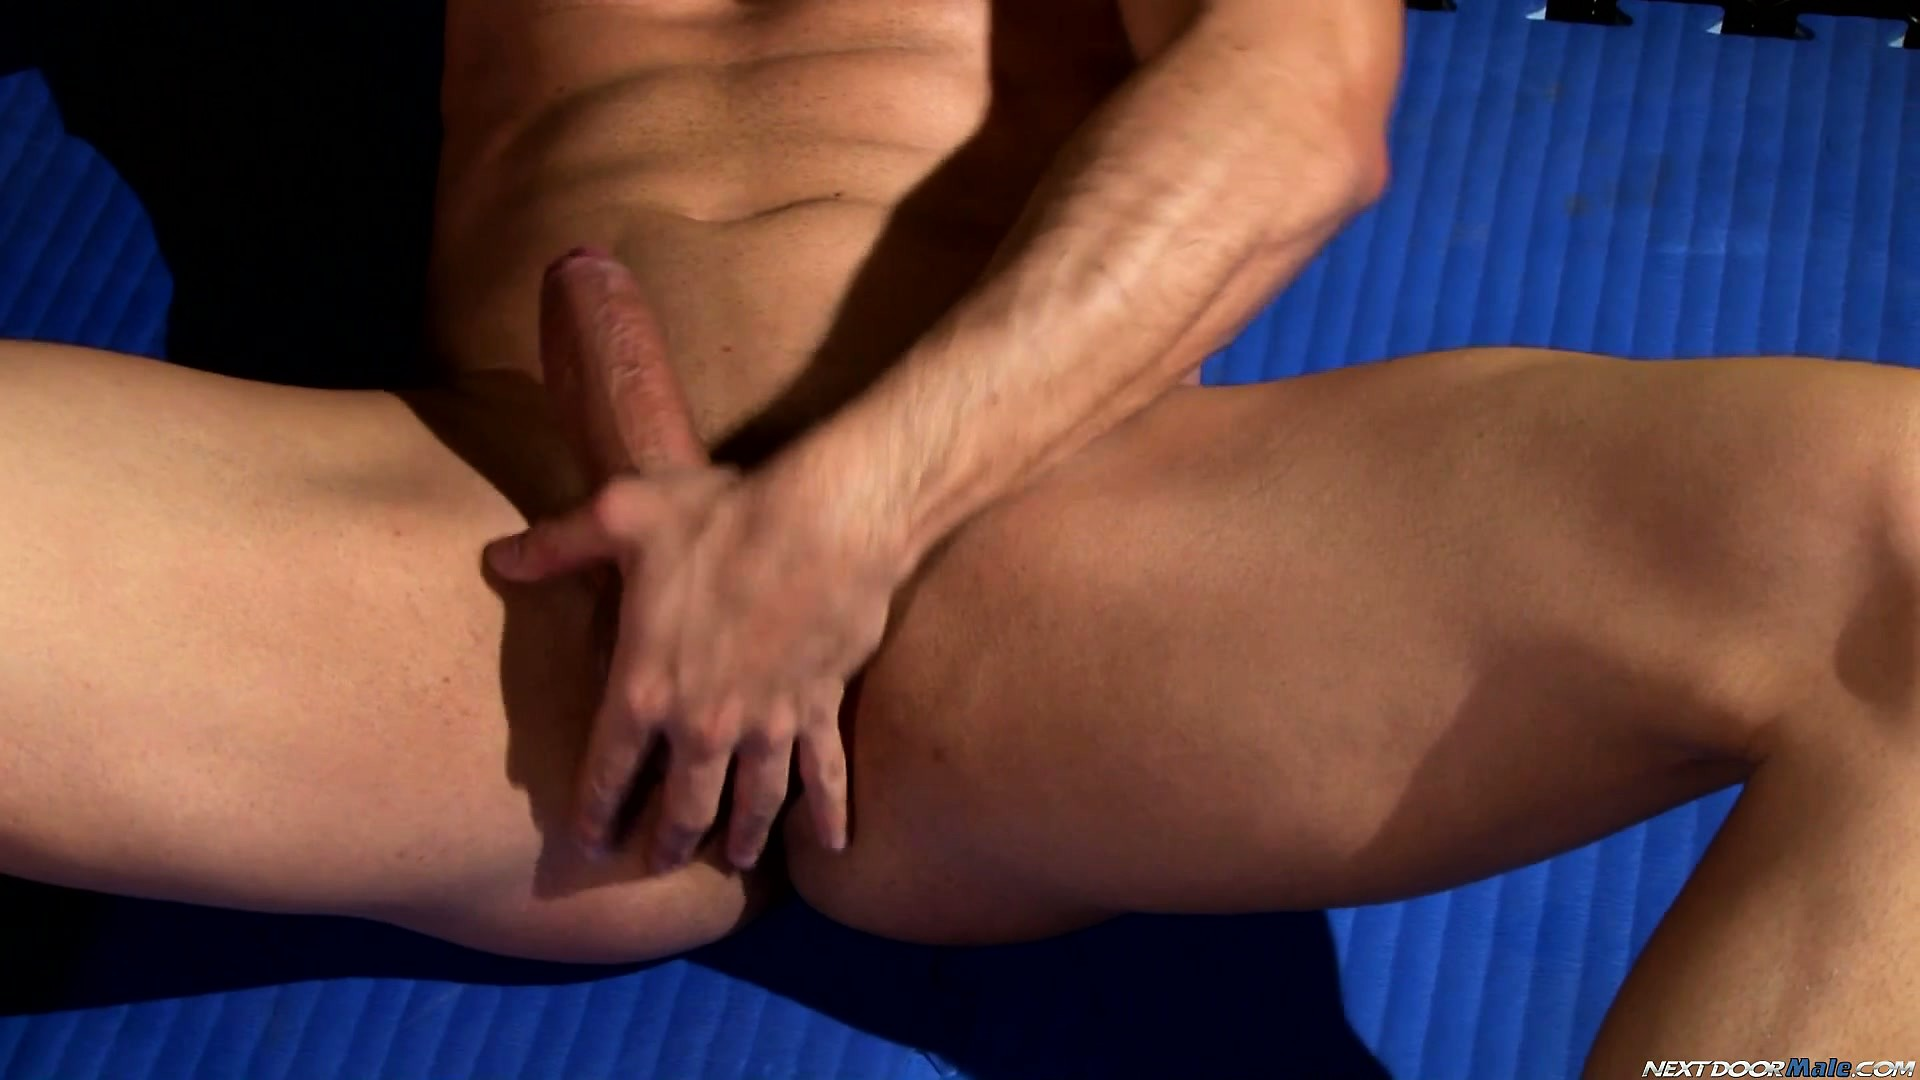 Porno Video of Will Sits On The Floor Jerking His Huge Shaft On His Way To Drive It To Orgasm